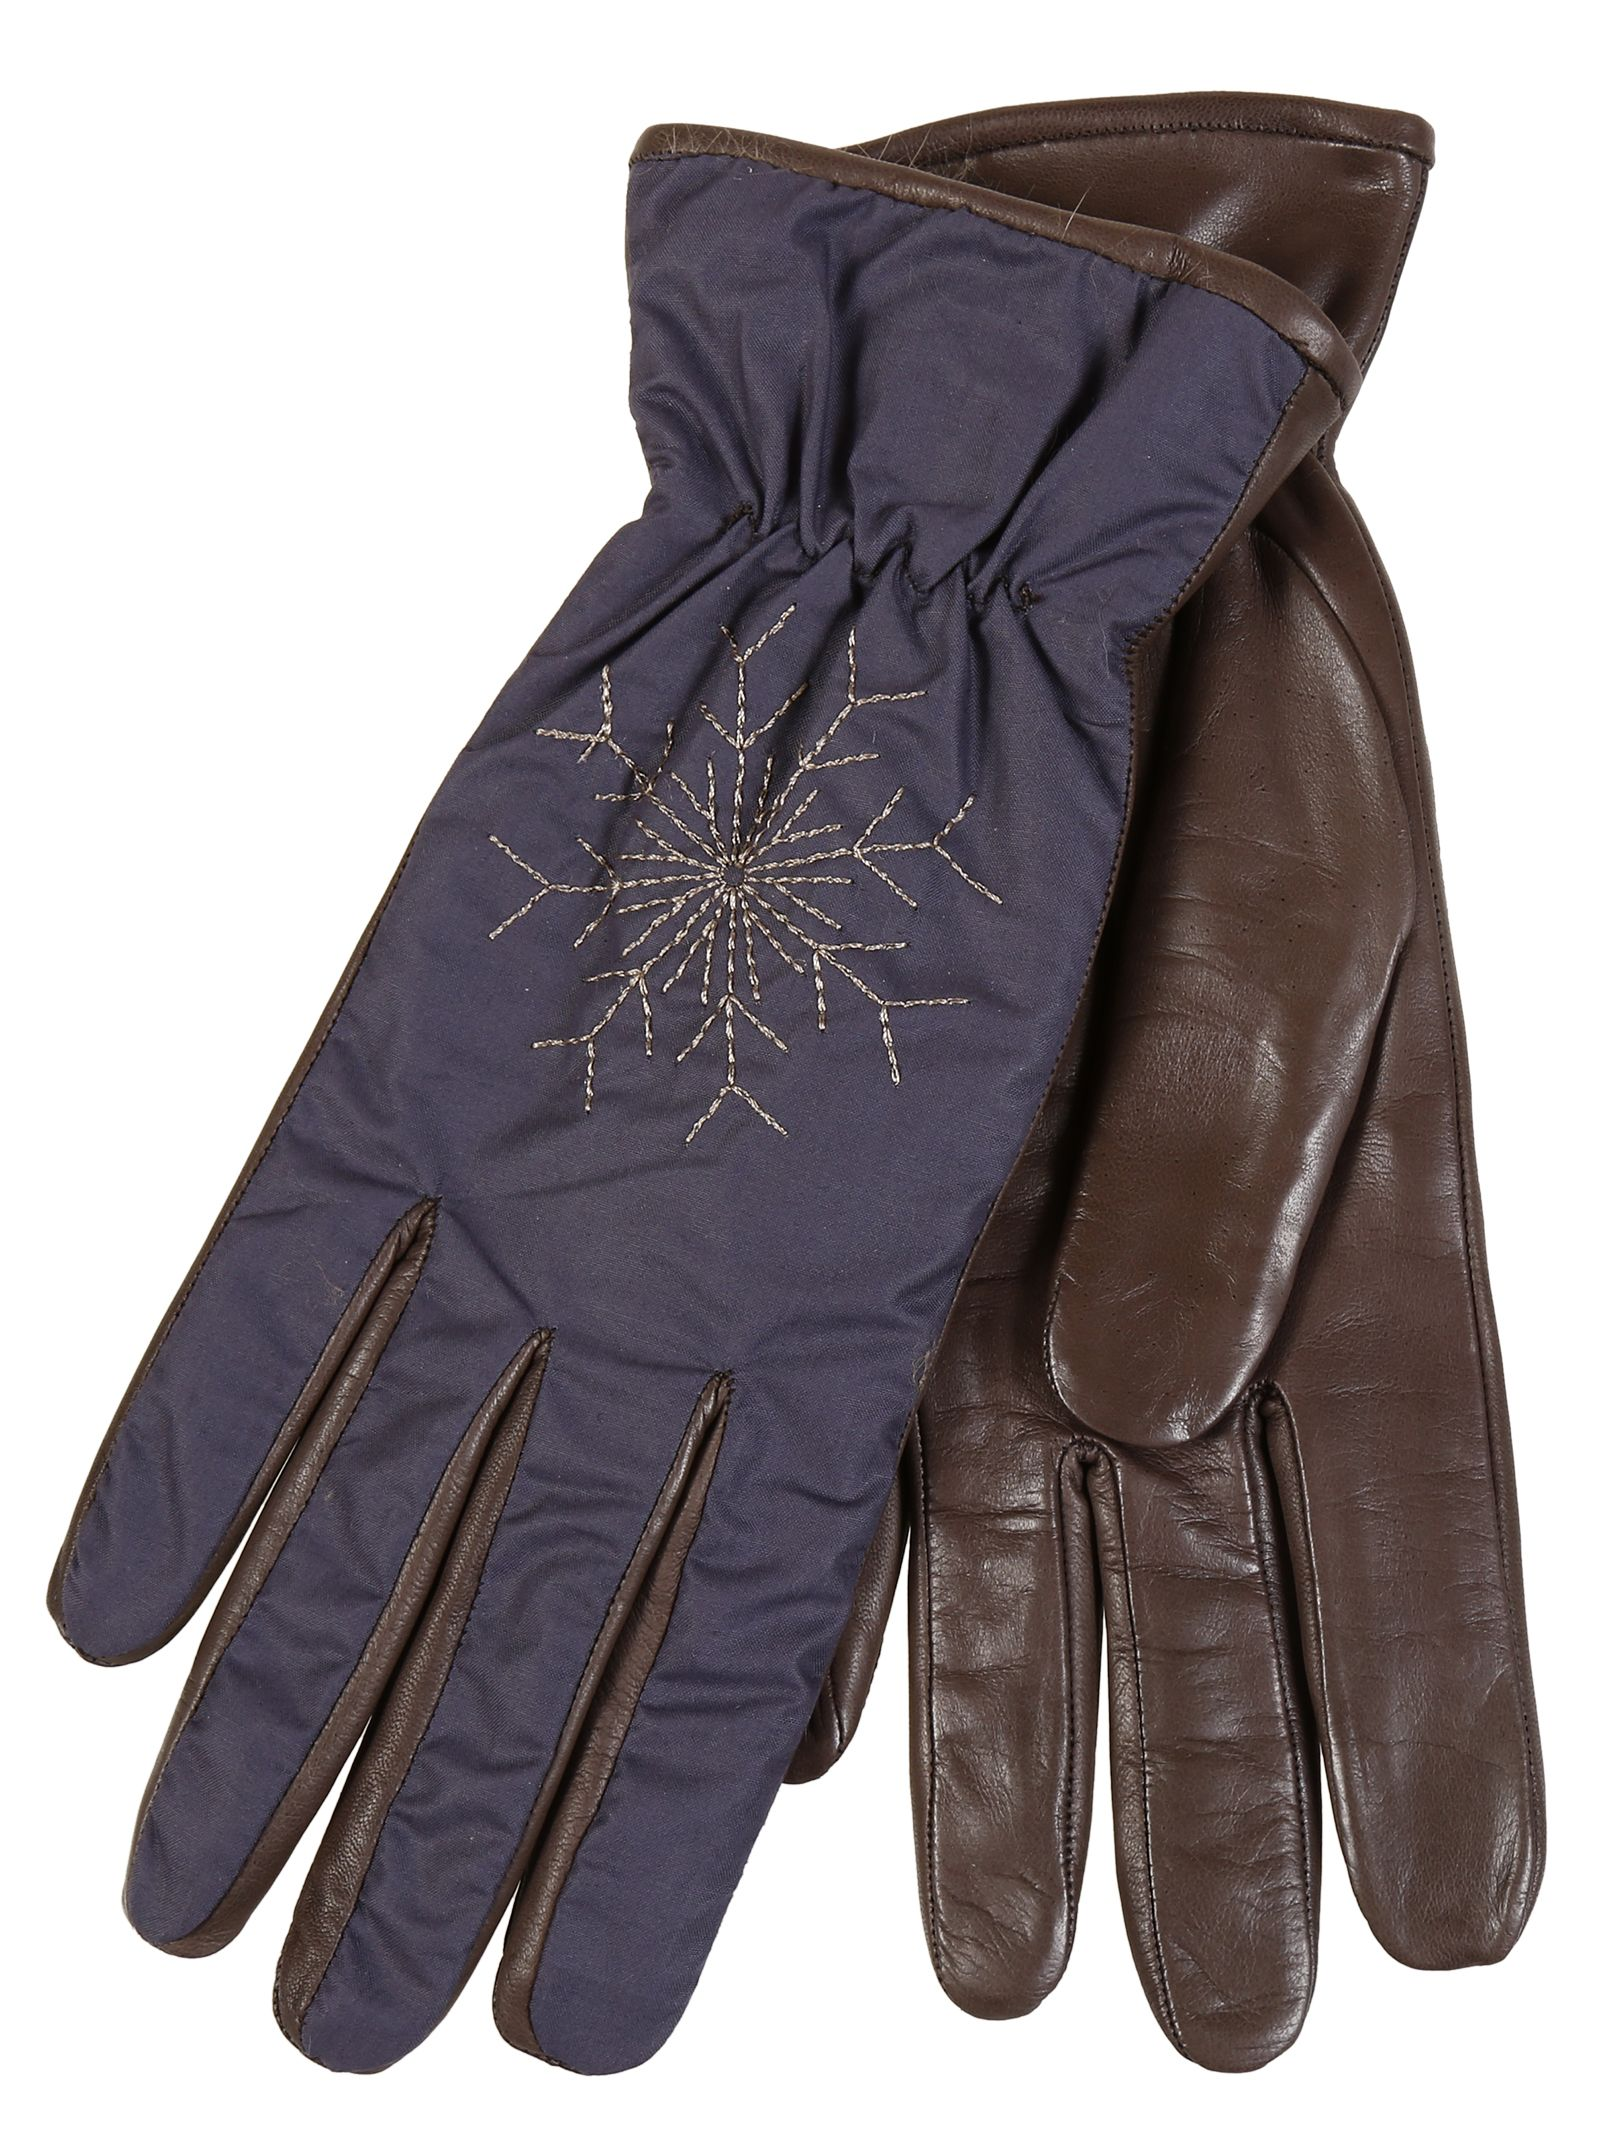 Restelli Nappa Leather Gloves With Snowflake Embroidery. Lined rabbit